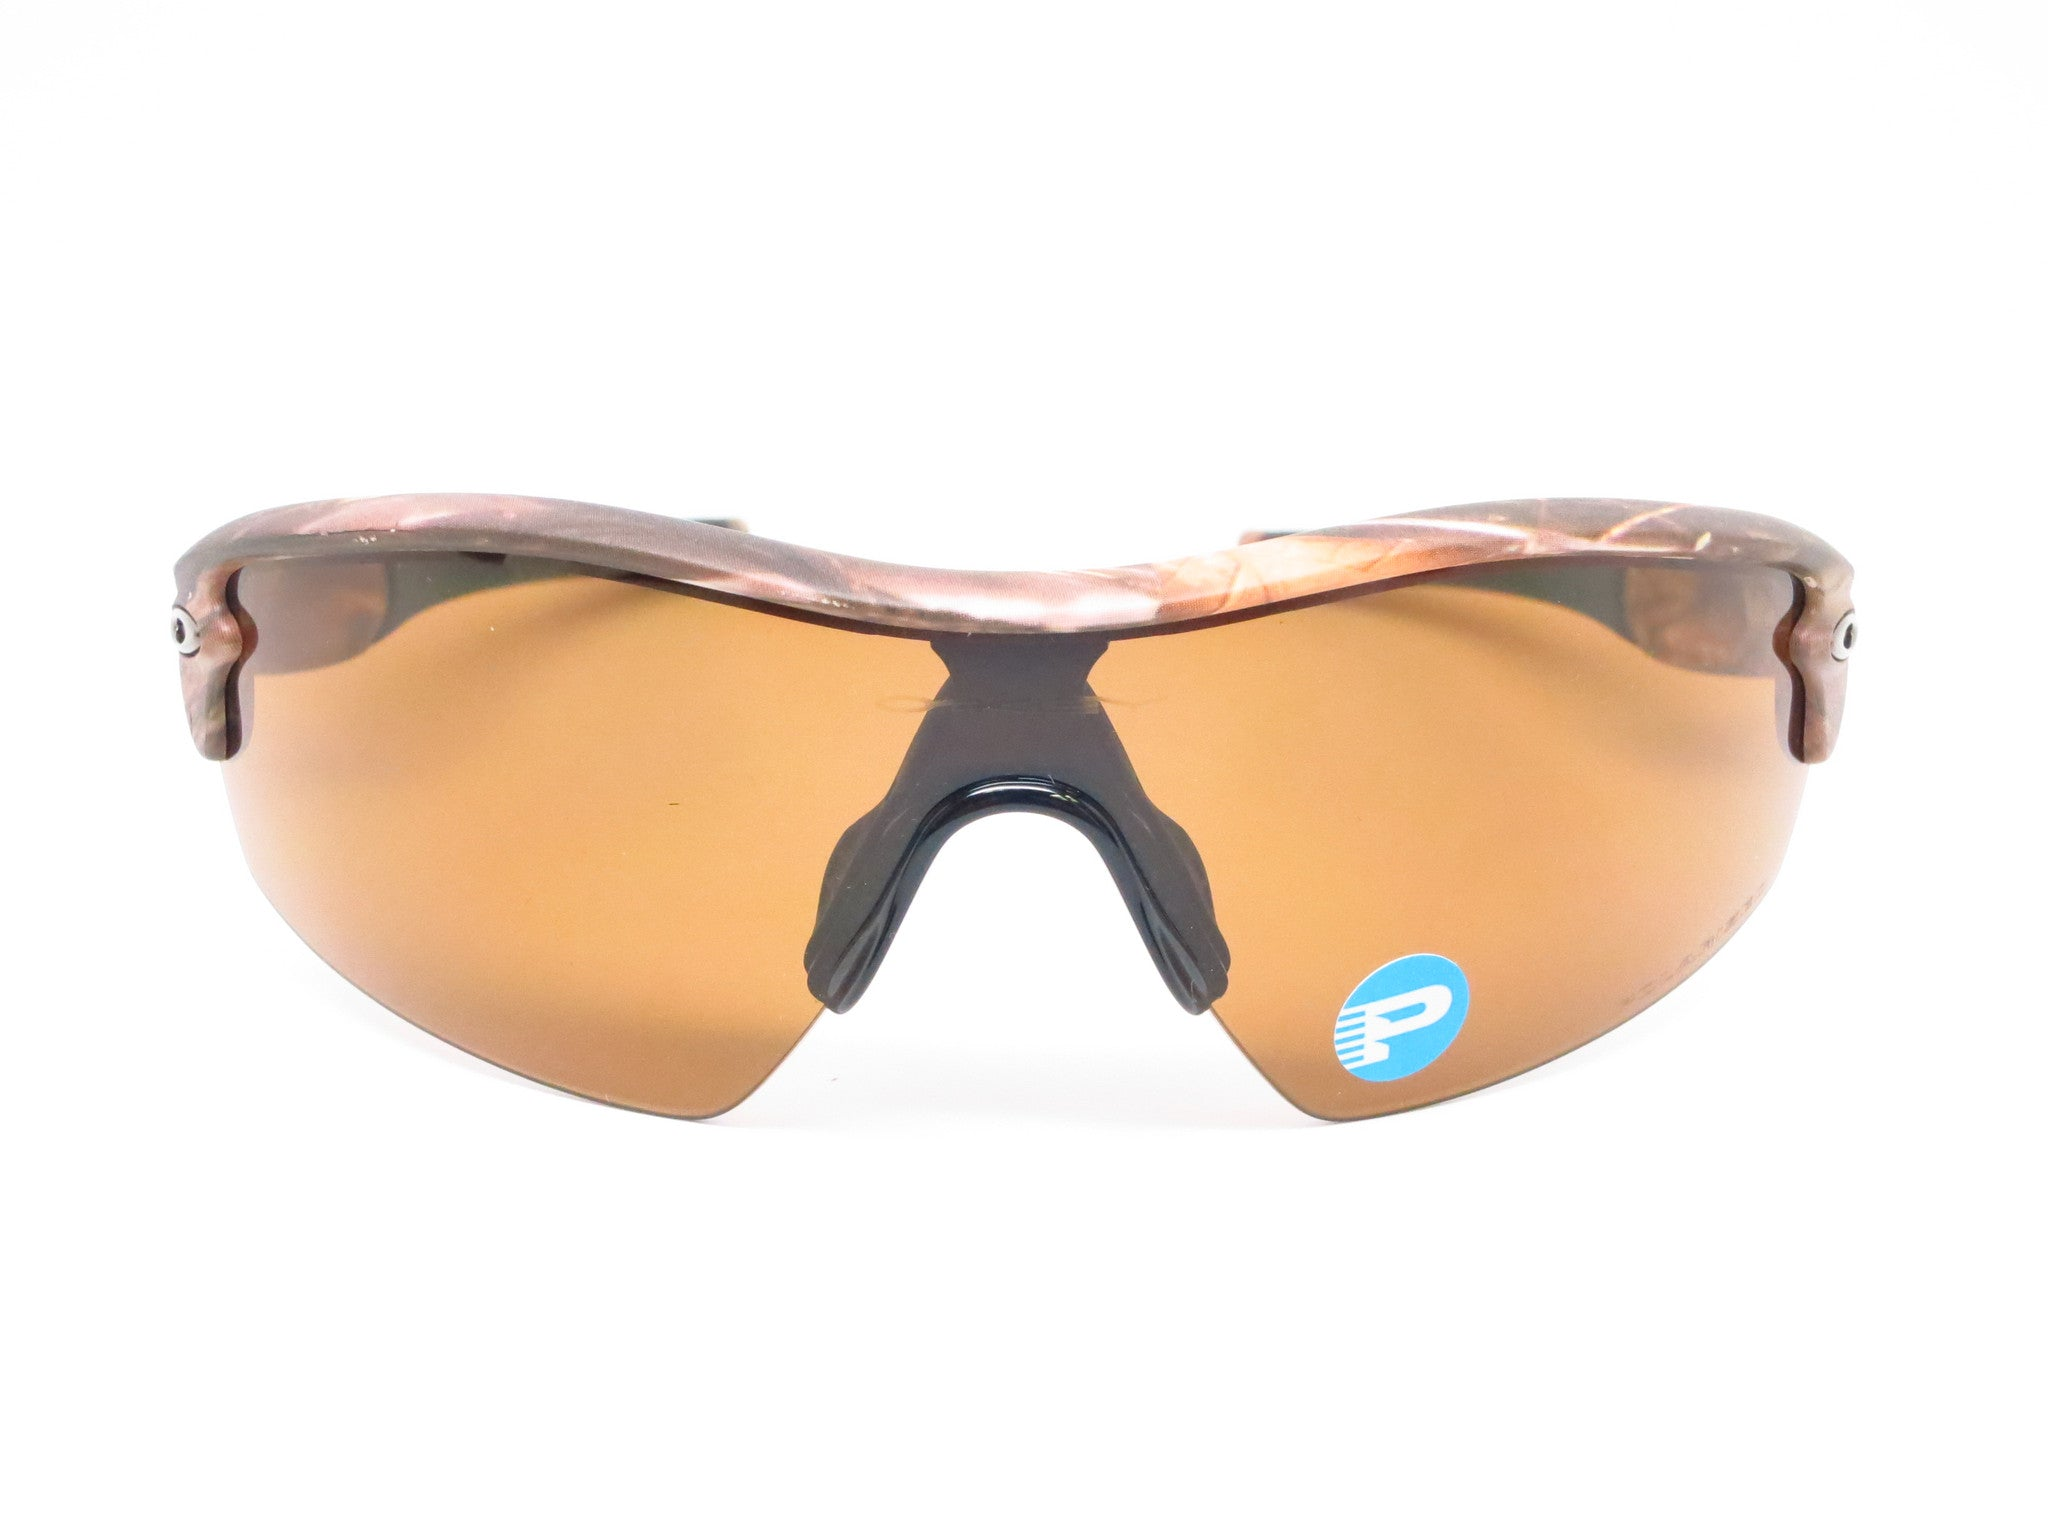 a9deca3304 ... coupon for oakley radar pitch oo9052 03 woodland camo sunglasses eye  heart shades oakley cc9ed 72031